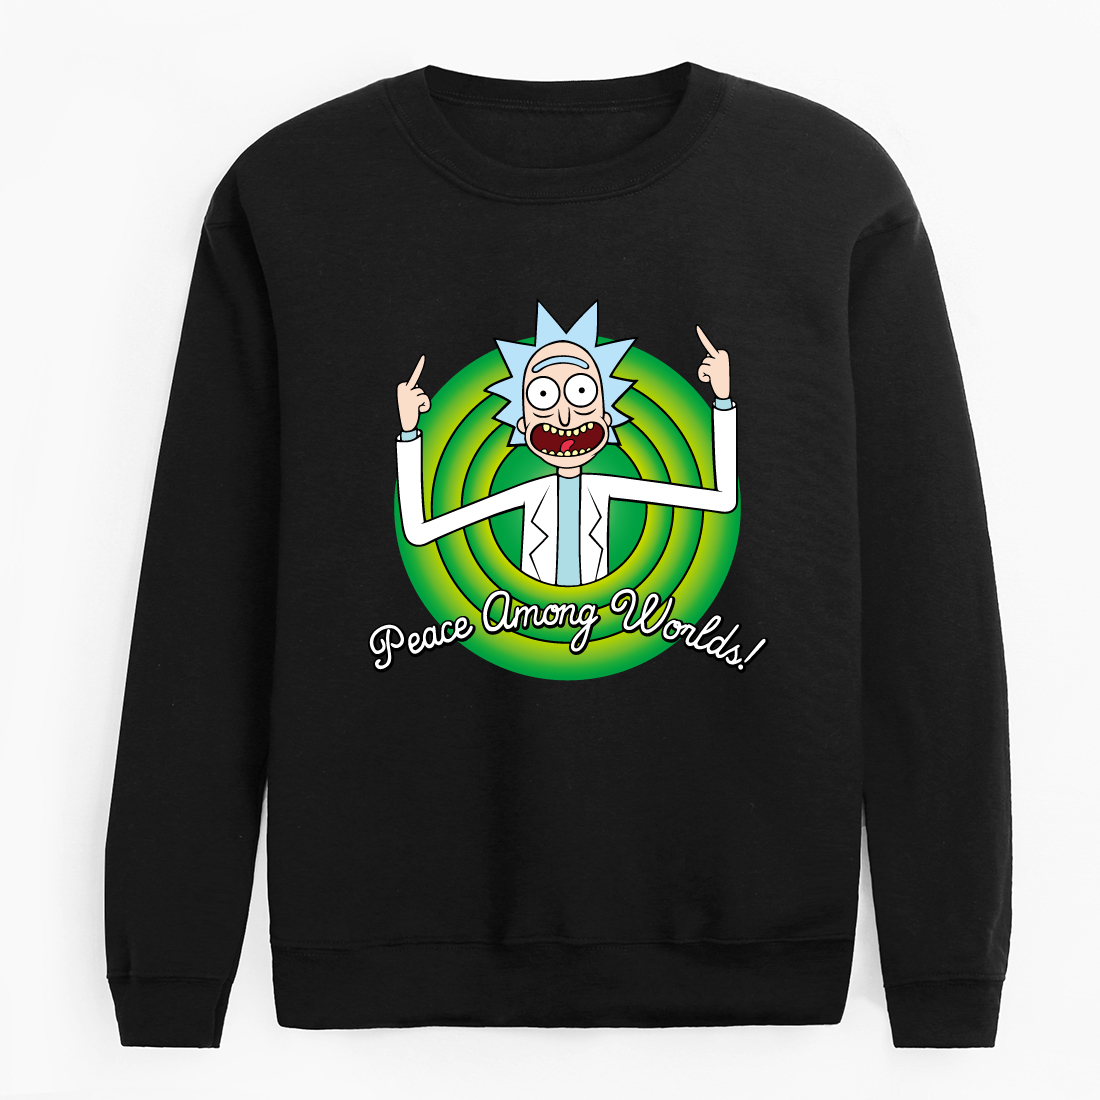 2020 New Autumn Character Anime Cool Rick Morty Hoodies Peace Among Worlds Folk Hoodie Men Women Cotton Casual Funny Pullover